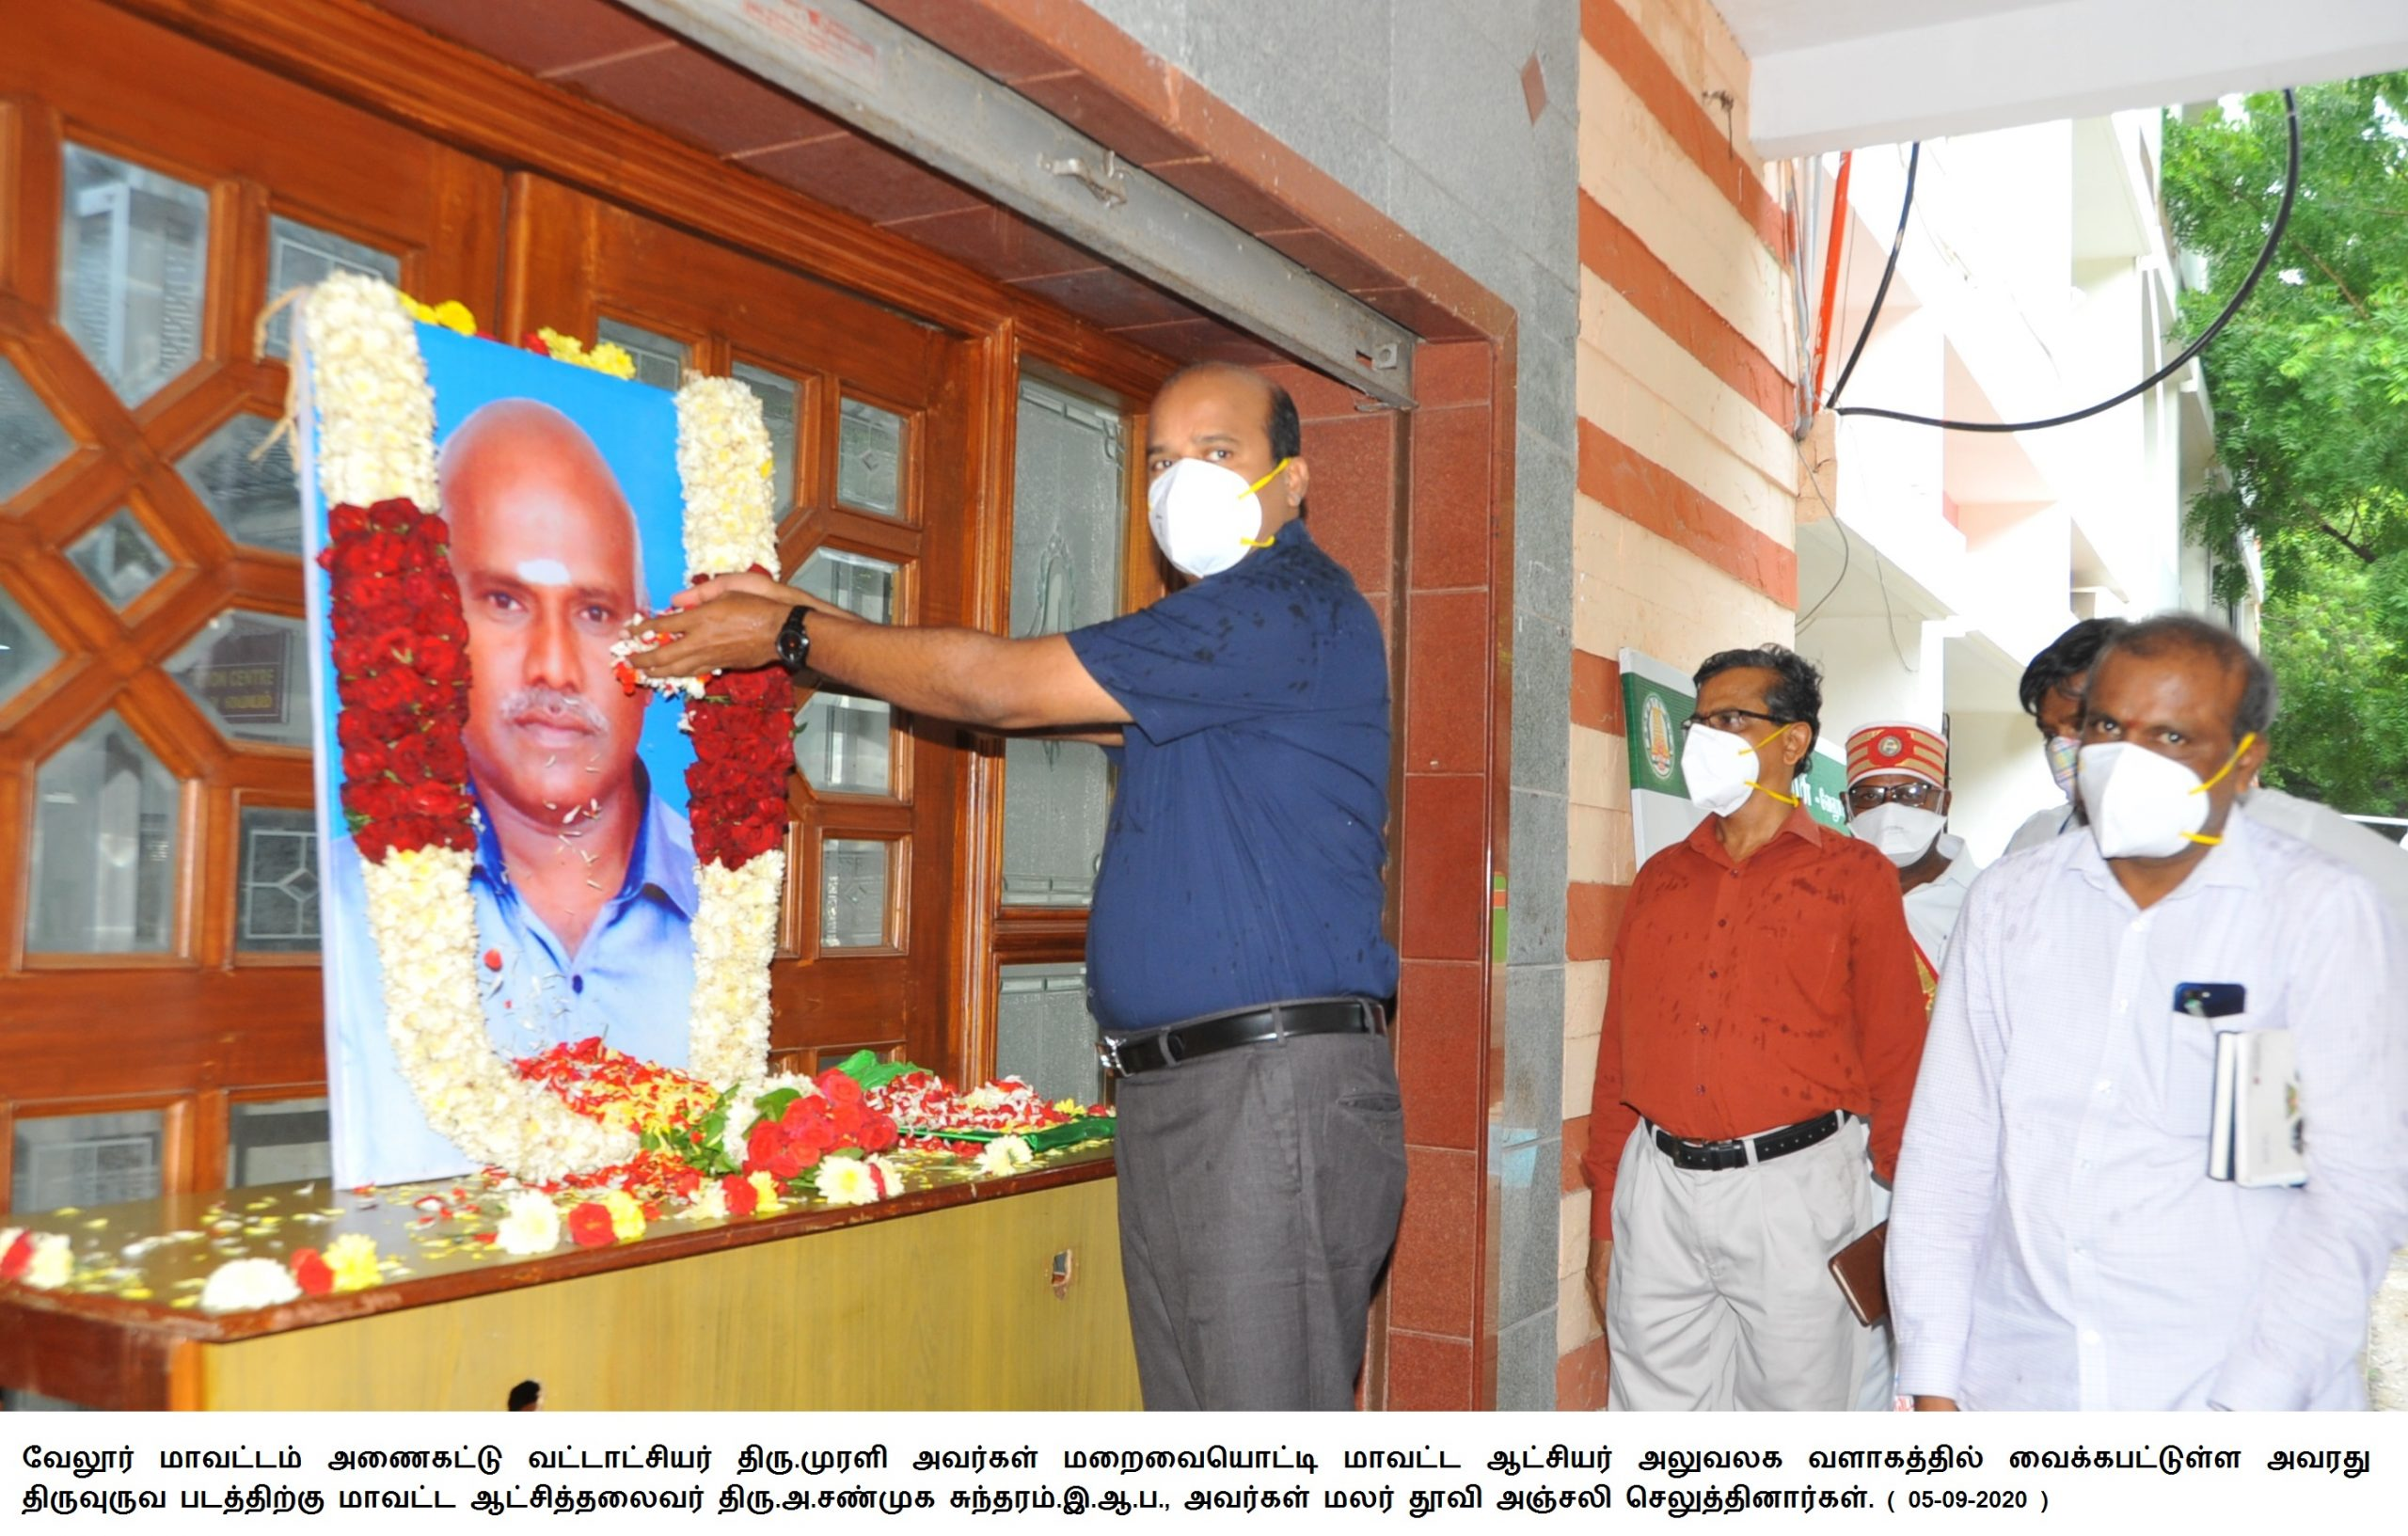 District Collector Pay tribute to Anaicut tahsildar Mr.Murali 05-09-2020